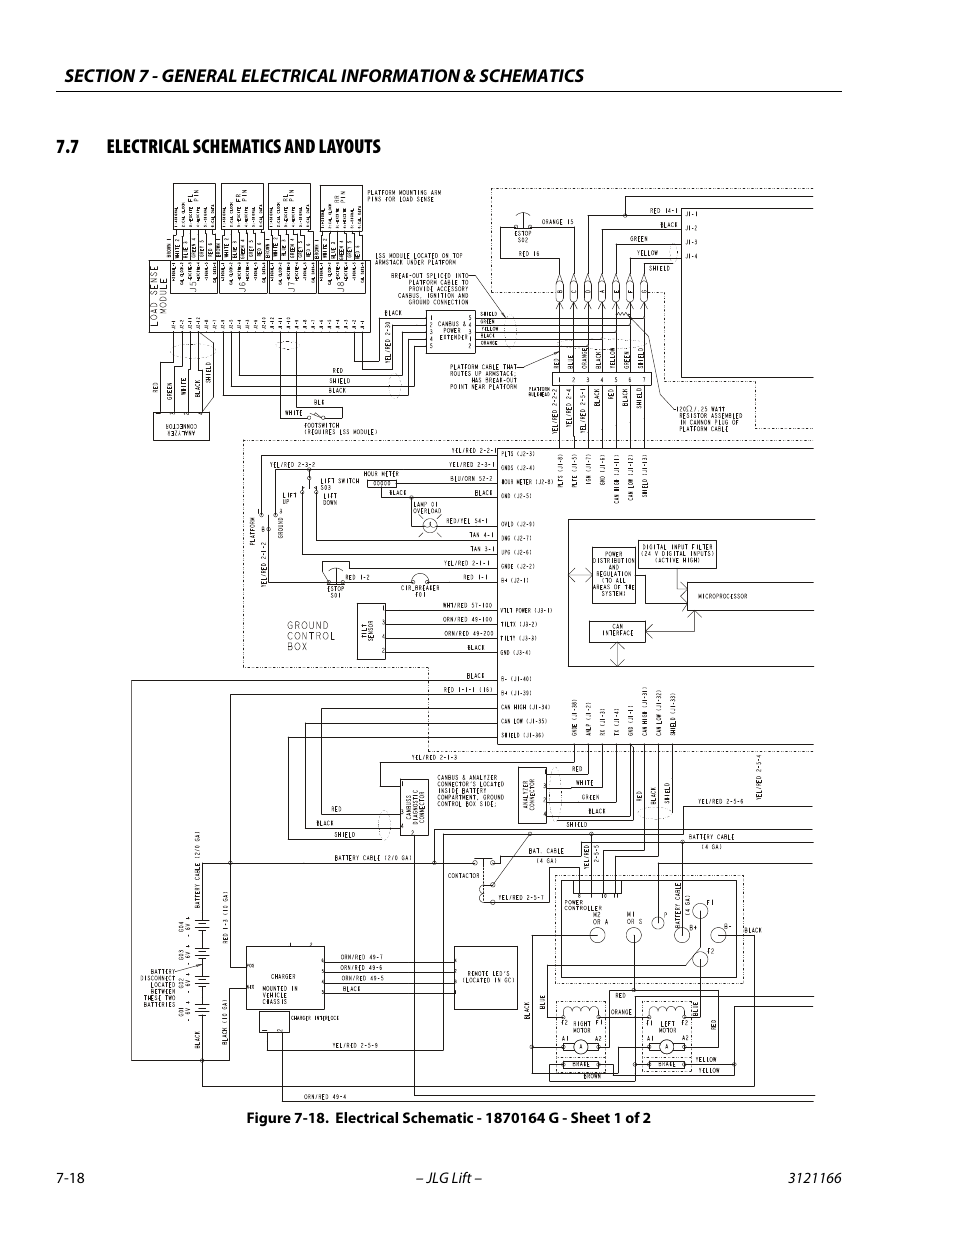 Jlg model 40 wiring diagram